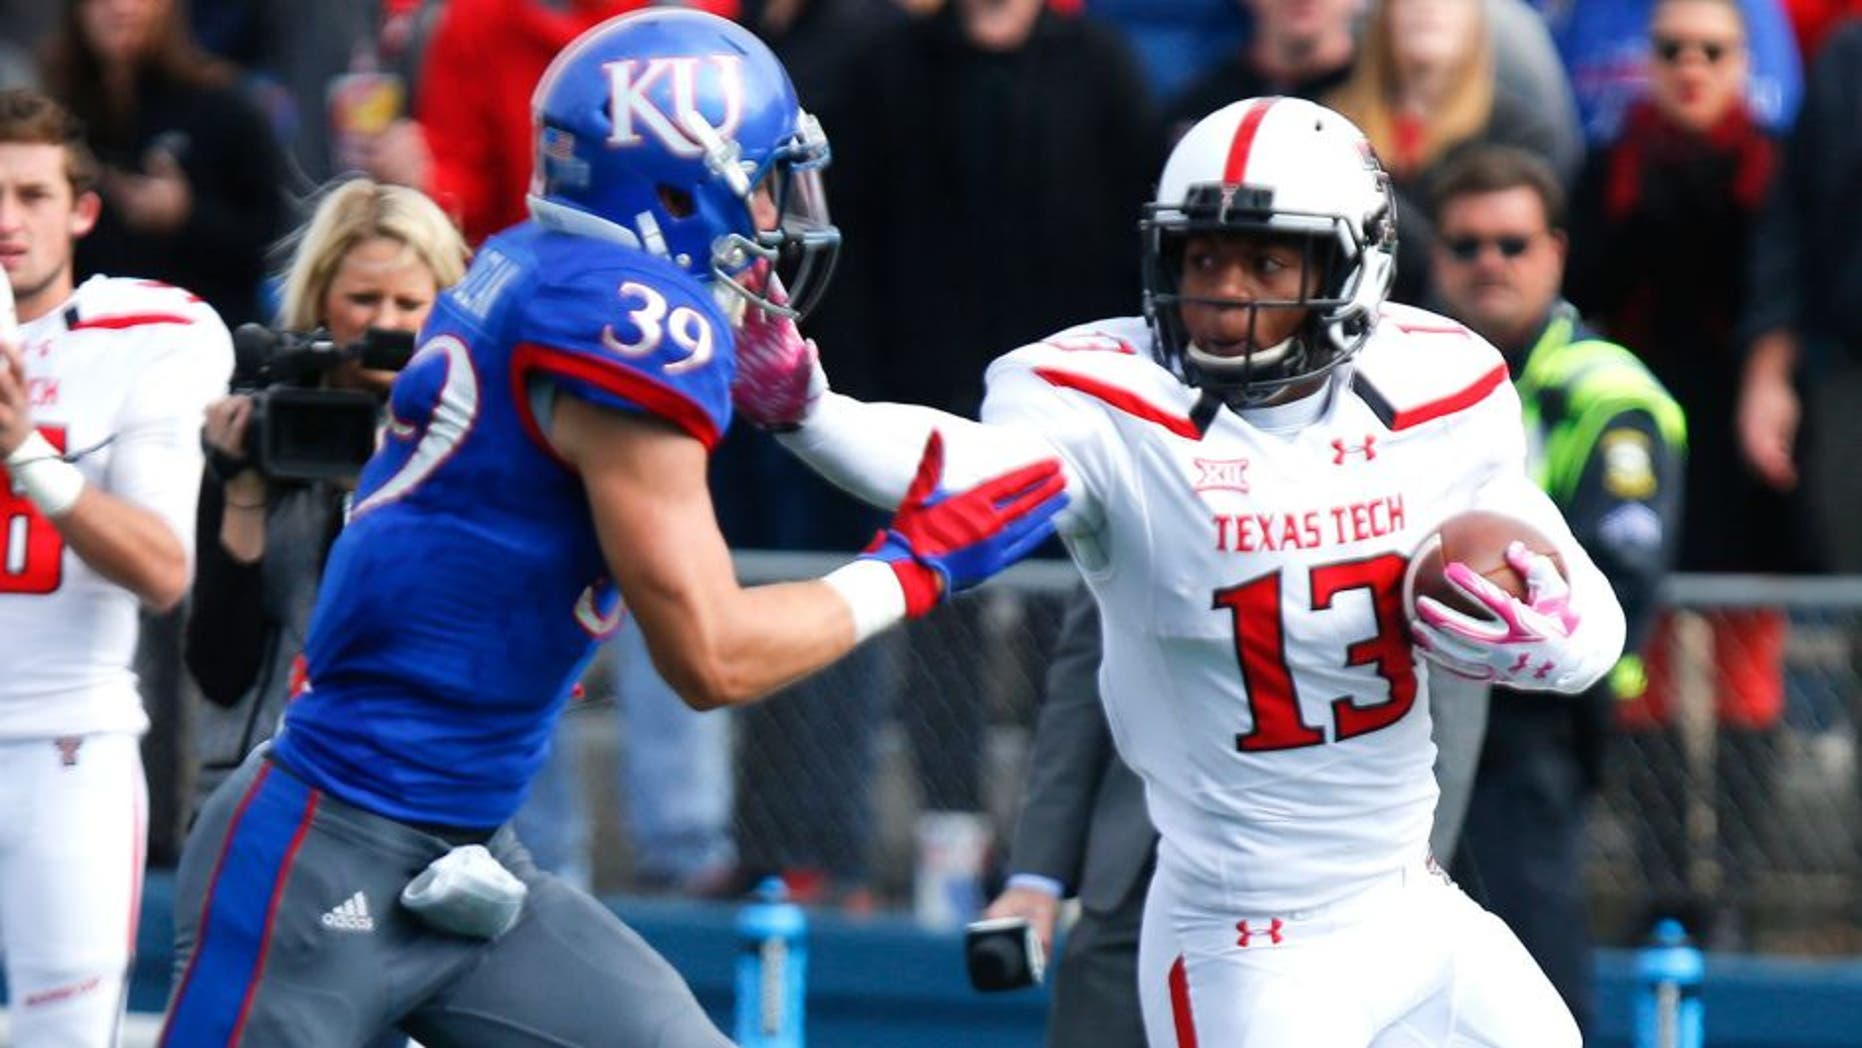 LAWRENCE, KS - OCTOBER 17: Cameron Batson #13 of the Texas Tech Red Raiders fends off Michael Glatczak #39 of the Kansas Jayhawks during the game on October 17, 2015 at Memorial Stadium in Lawrence, Kansas. (Photo by Kyle Rivas/Getty Images)